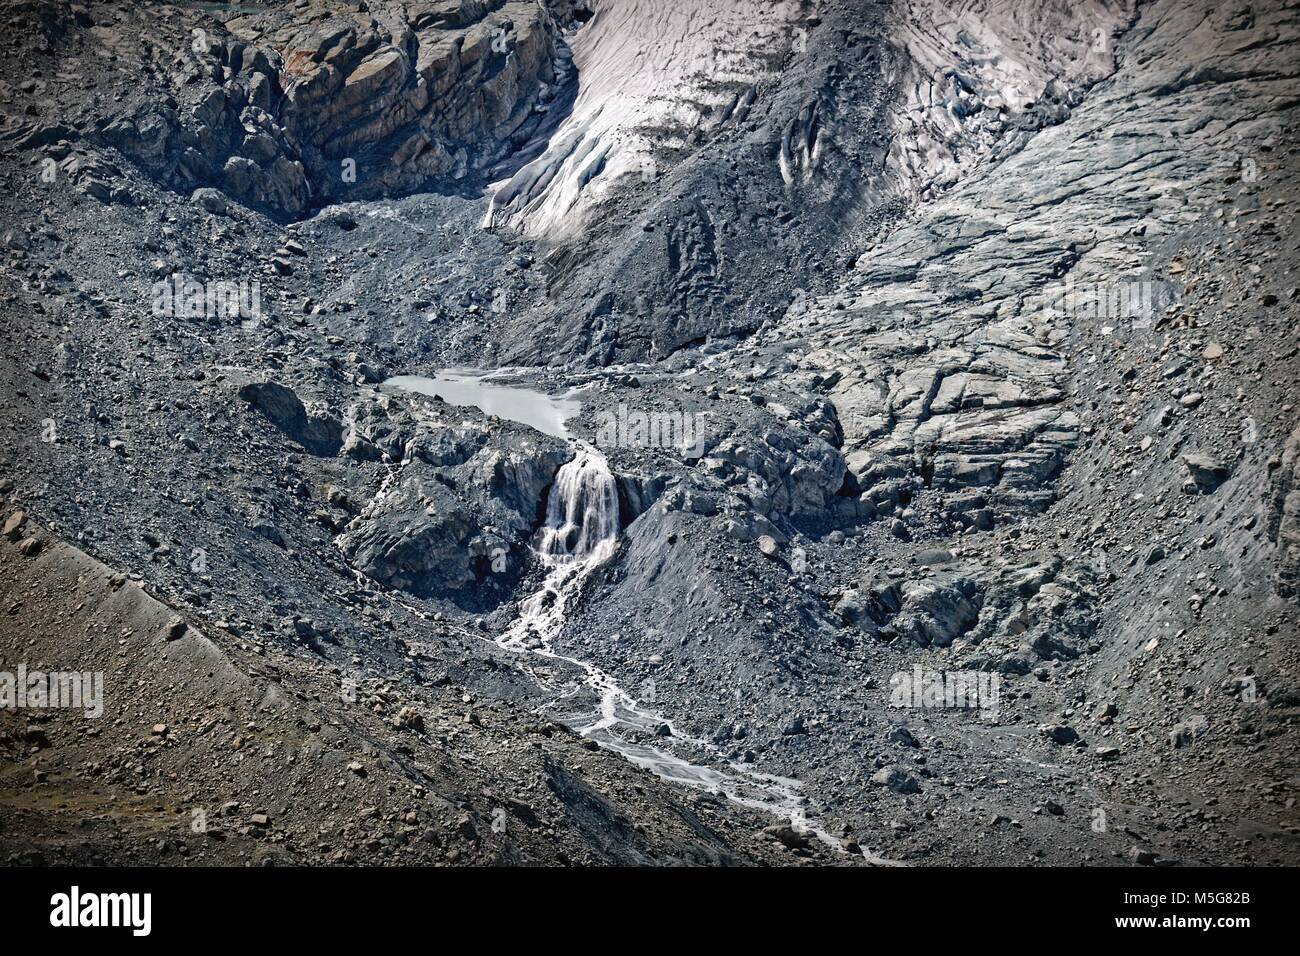 Streams feeding into and out of lake in floor of glacial valley, with glacier snout, and moraine - Stock Image